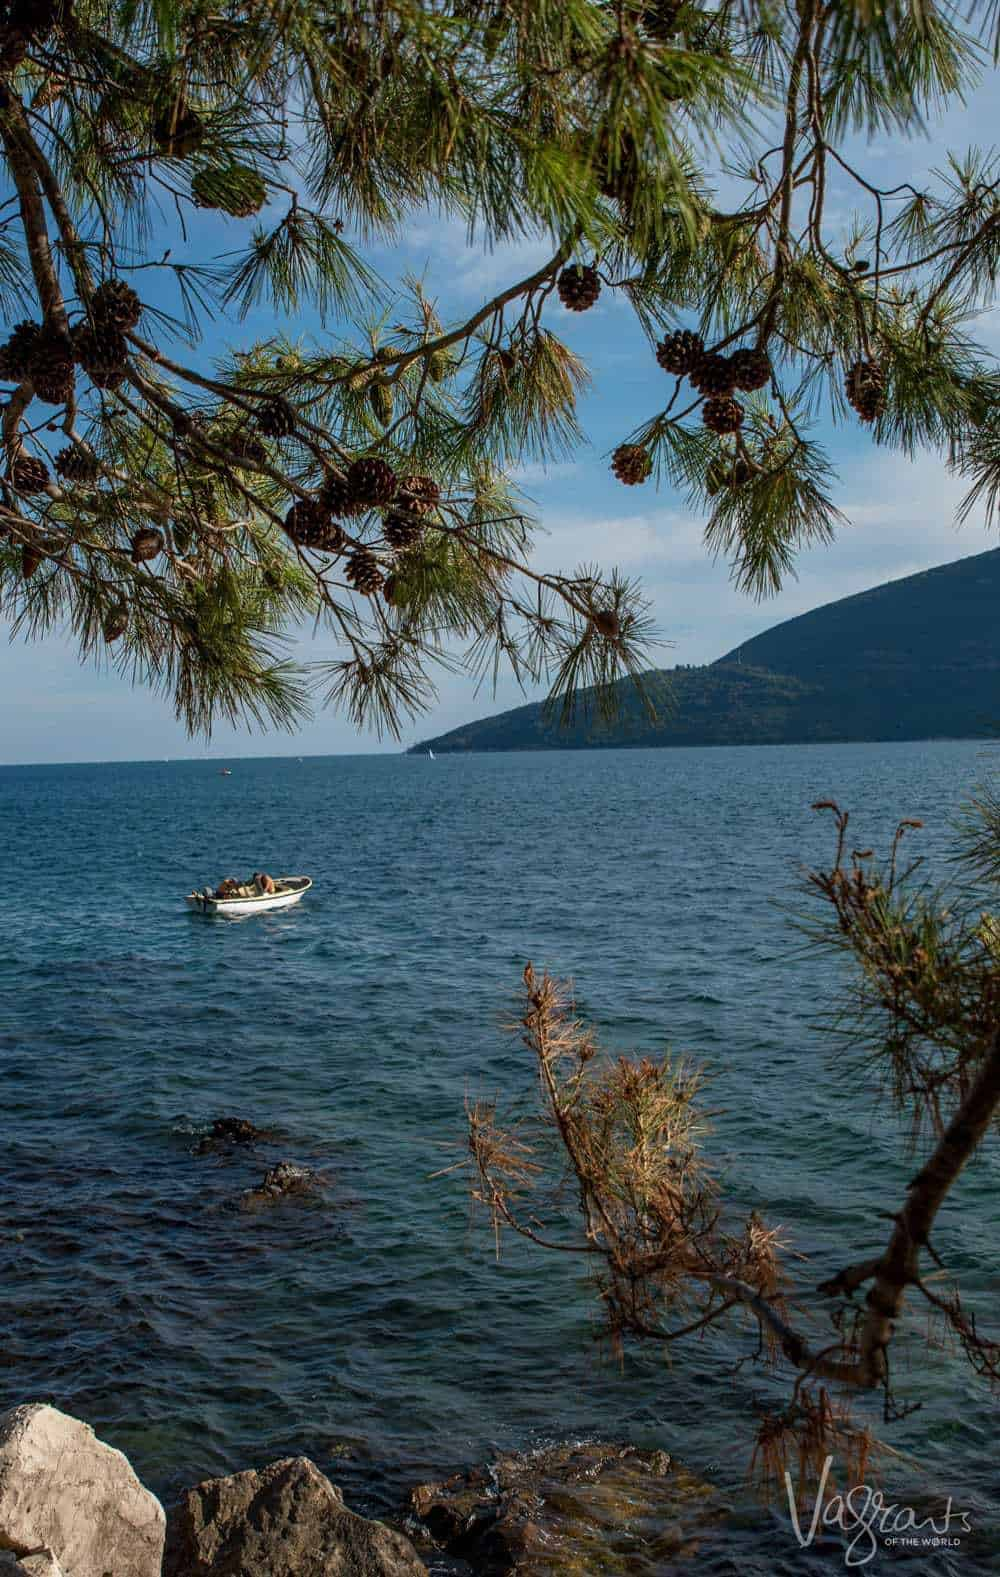 Beautiful Montenegro - The Best of The Balkans- Beautiful Bays and a Boating Lifestyle ⛵